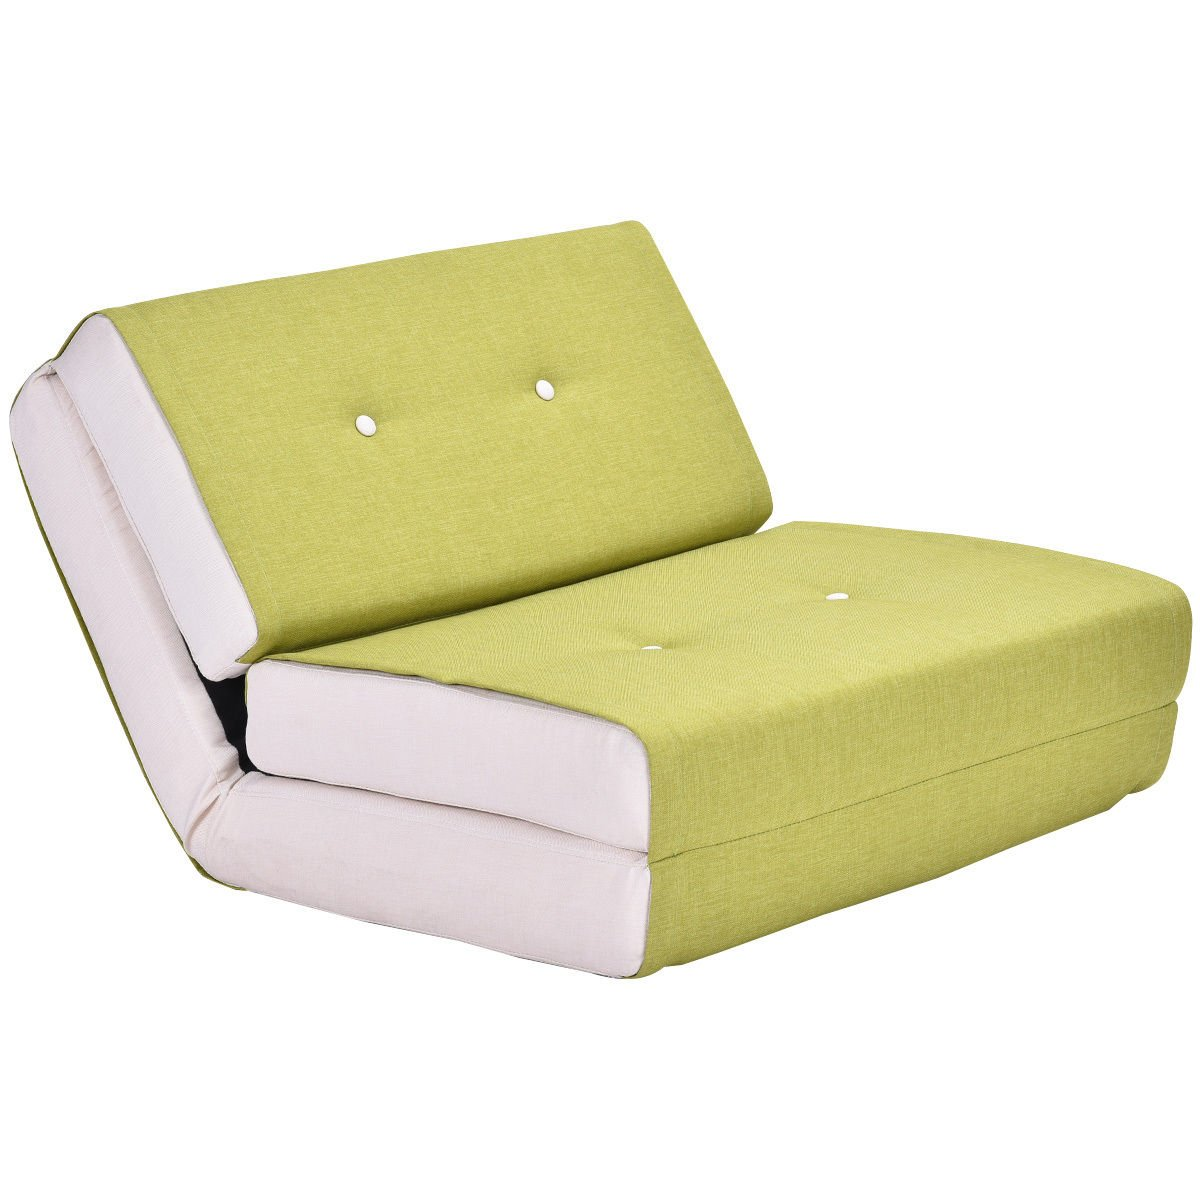 Fold Down Chair Flip Out Lounger Convertible Sleeper Bed Couch Game Dorm Green by Tumsun (Image #1)